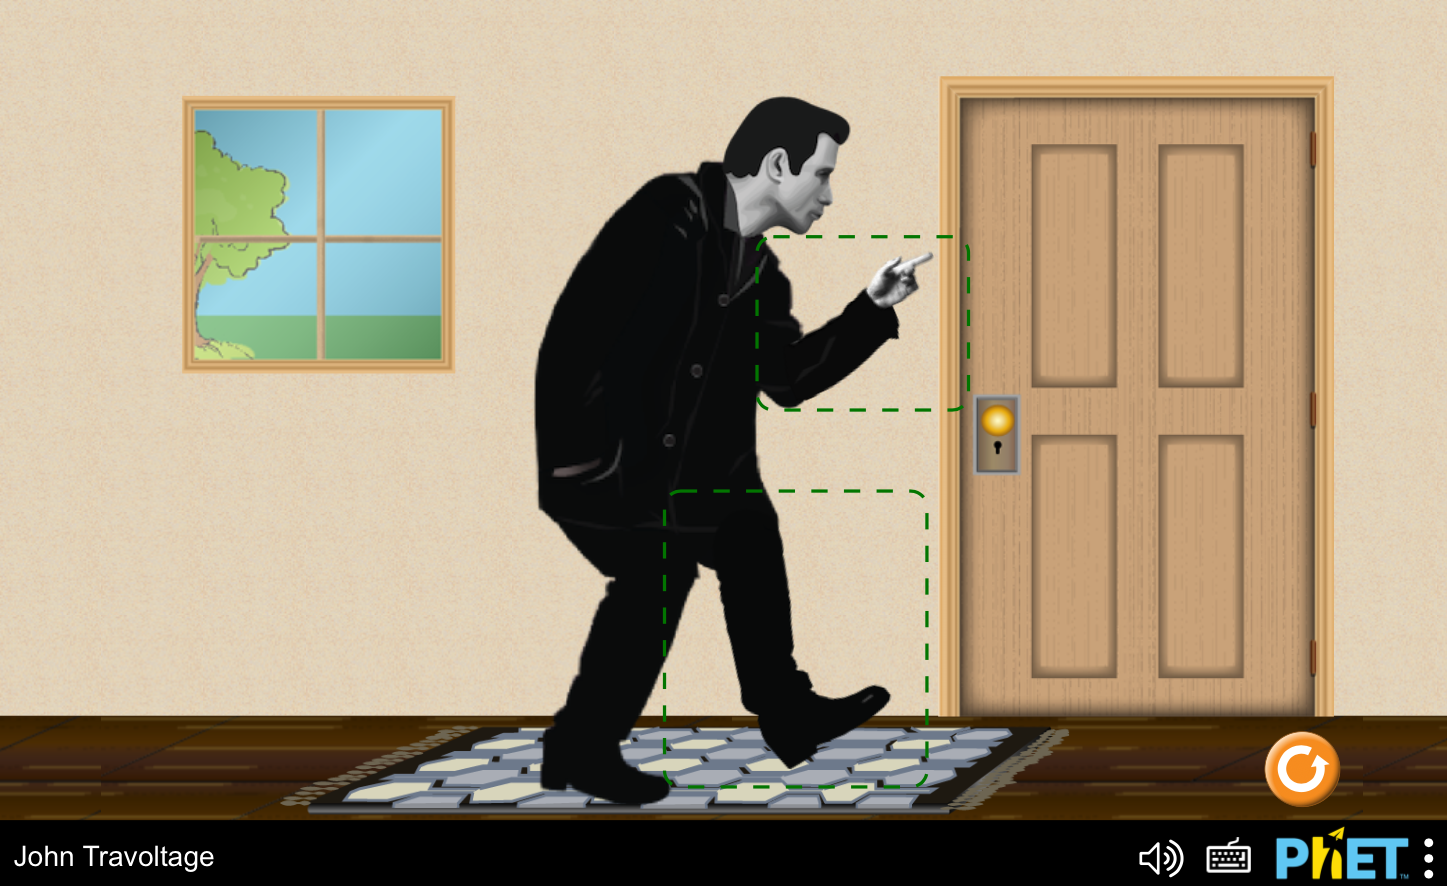 Screenshot: Phet Simulation - John Travoltage.  Animated character representation of John Travolta on a rug near a metal doorknob, with boxes around his hand and leg/foot.